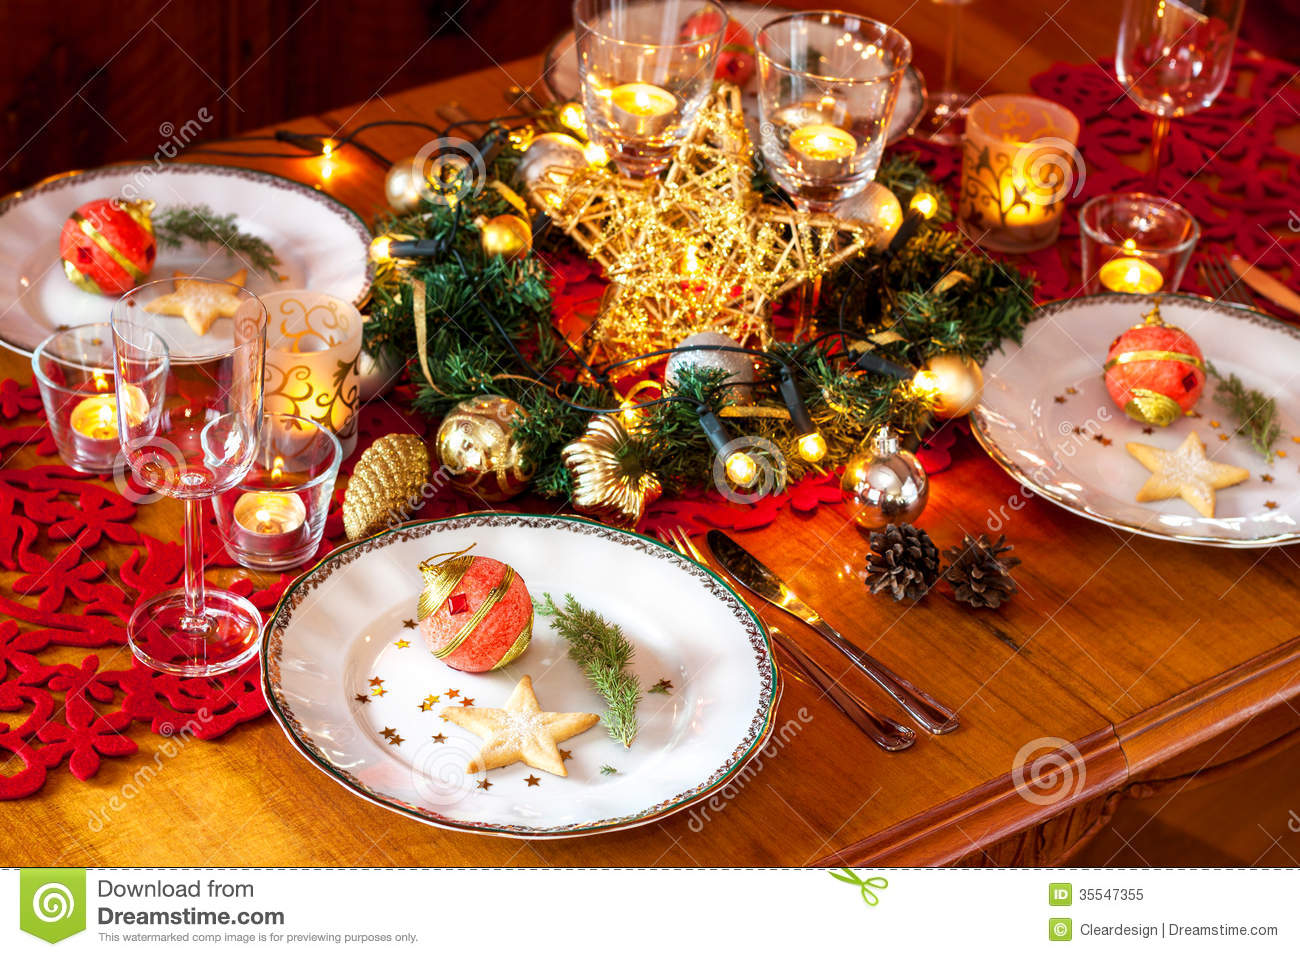 Christmas eve dinner party table setting with decorations royalty free stock photo image 35547355 - Christmas dinner decorations pictures ...